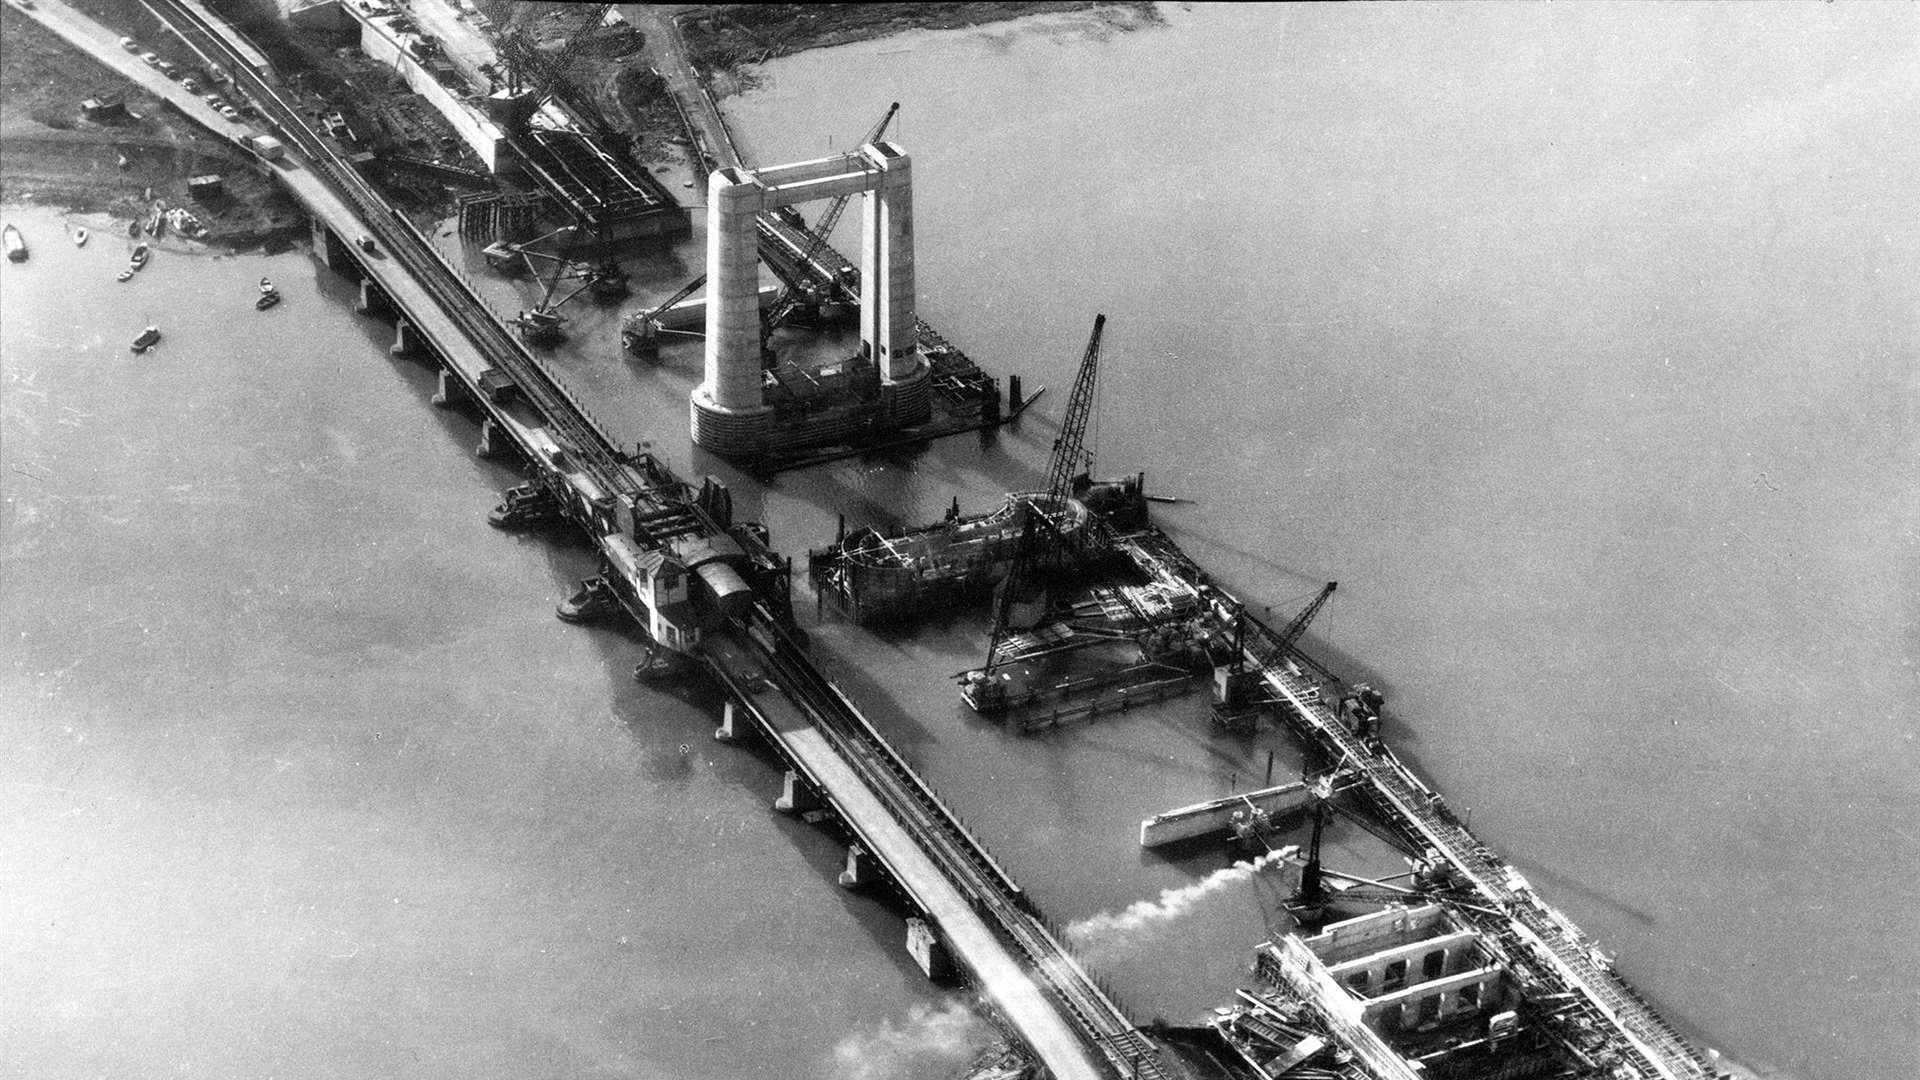 The Kingsferry Bridge under constructuion in 1959